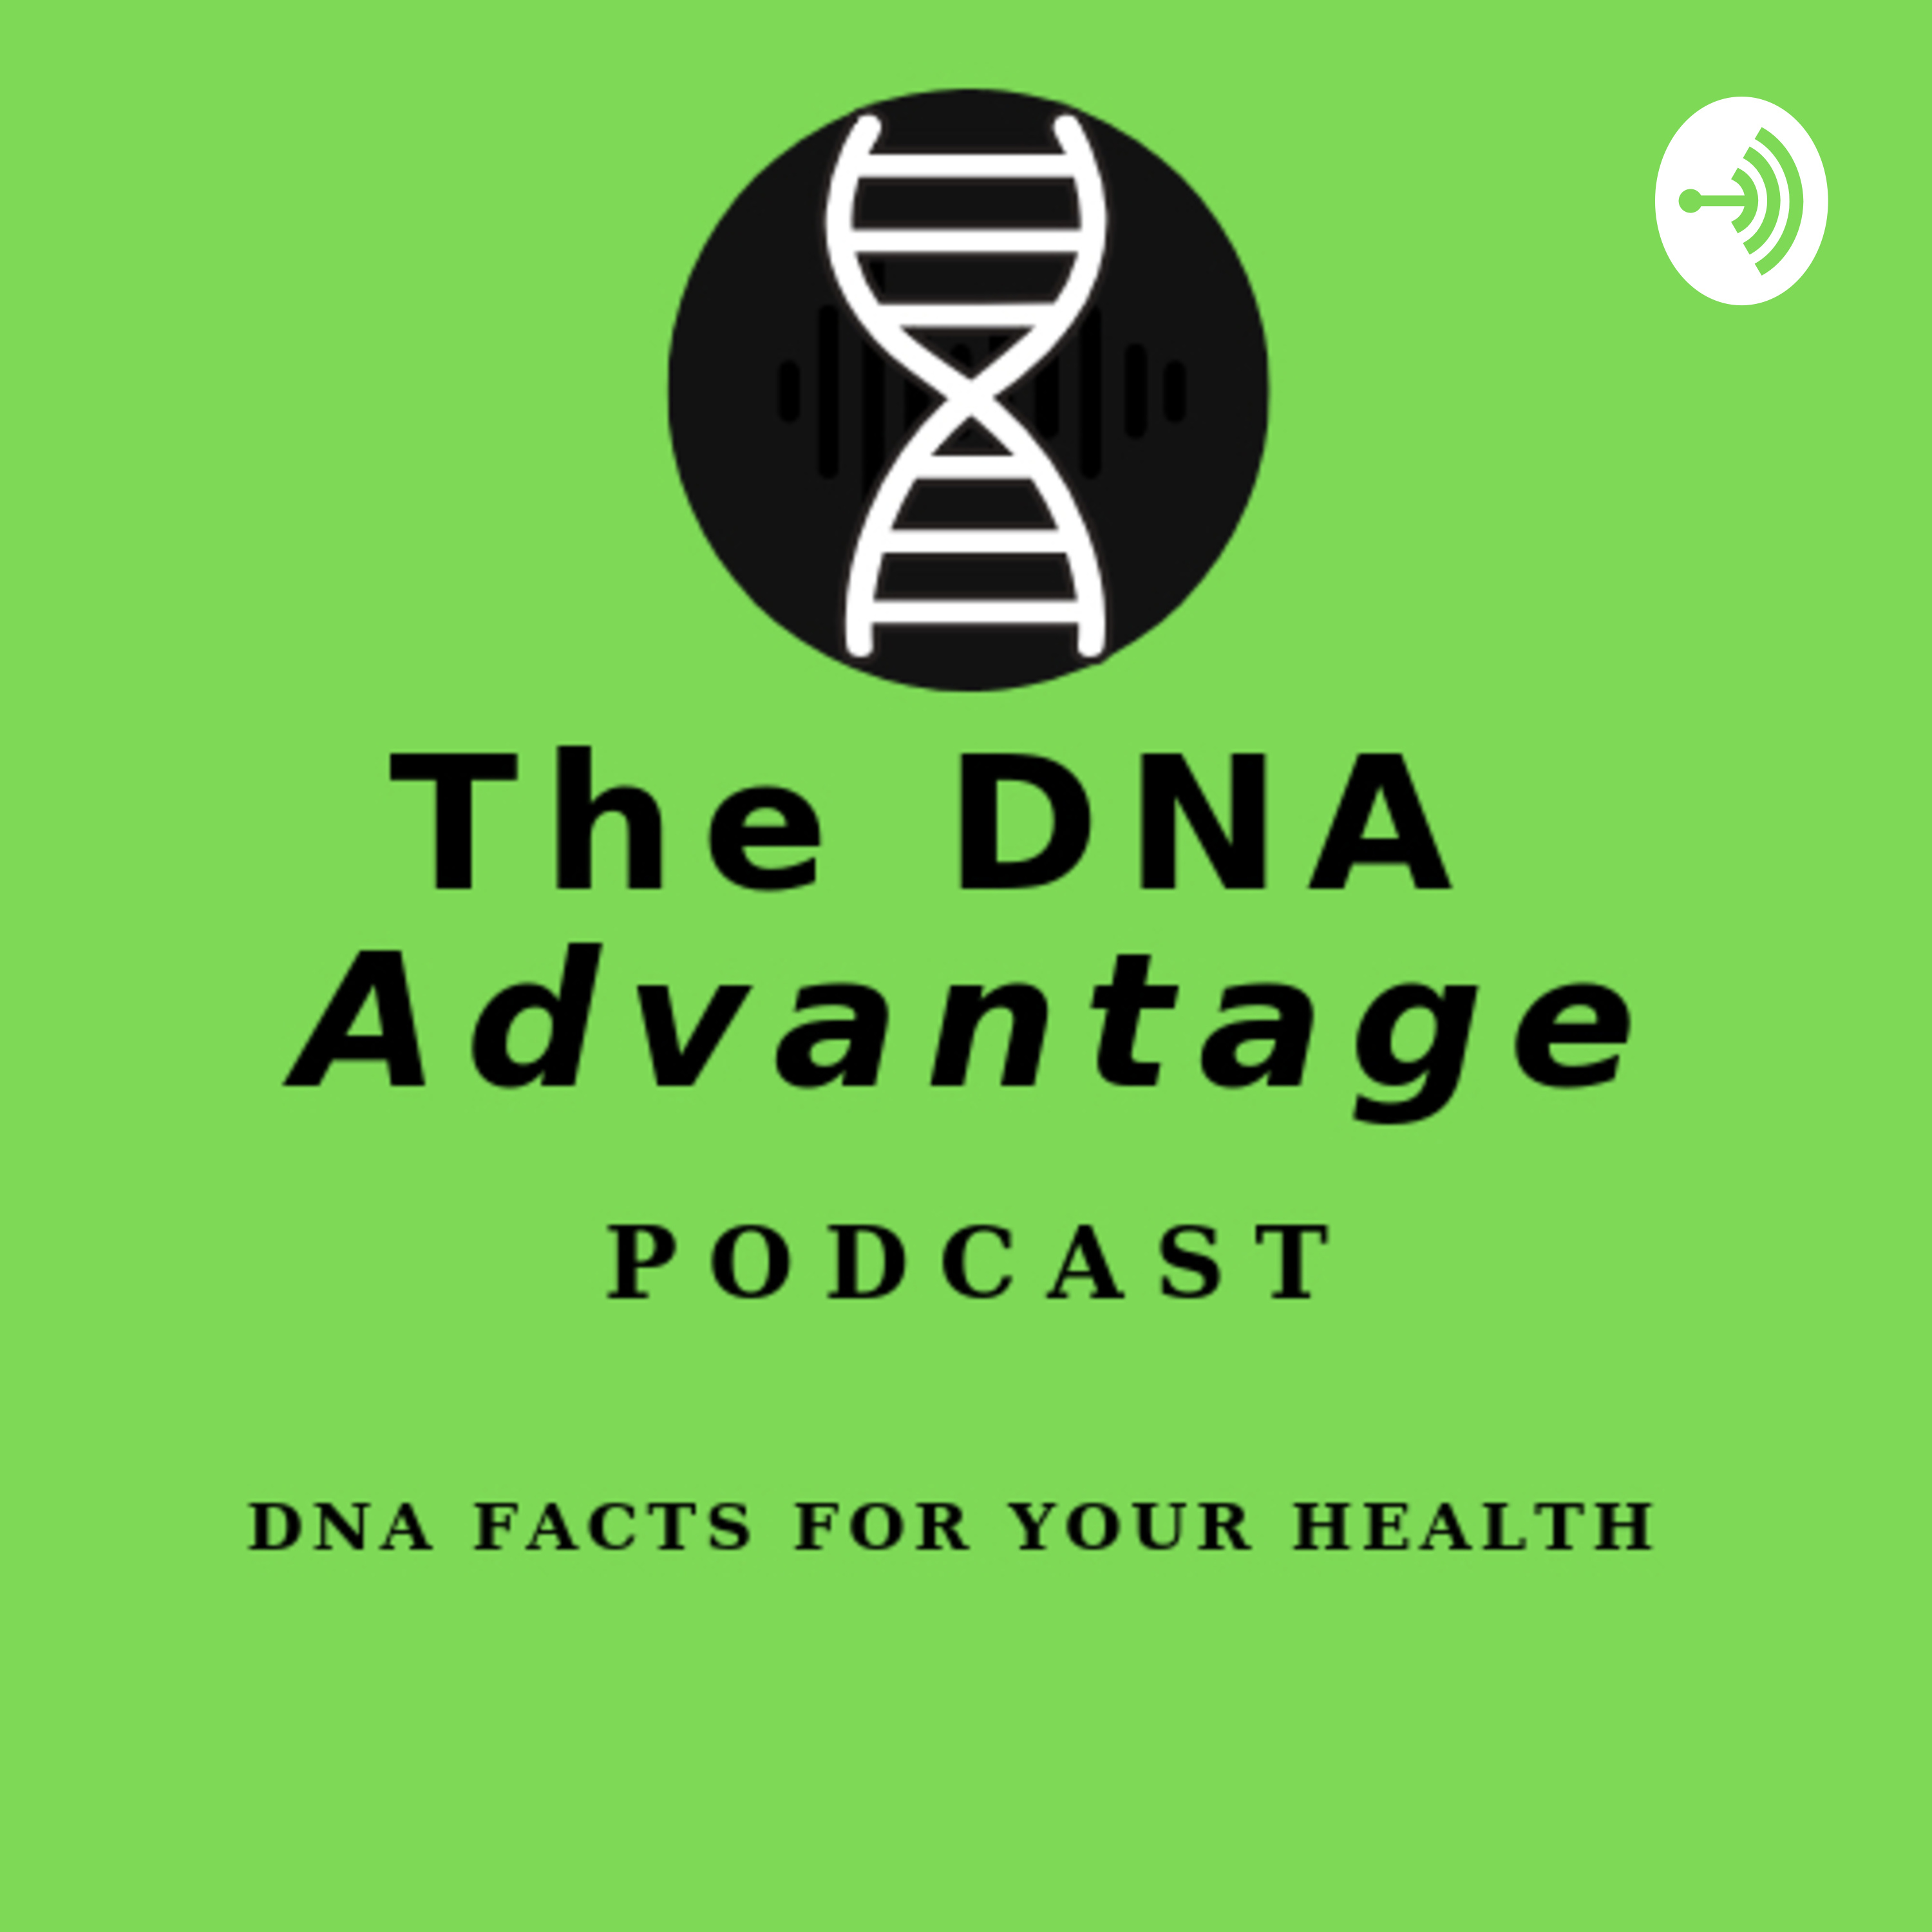 The DNA Advantage | Listen Free on Castbox